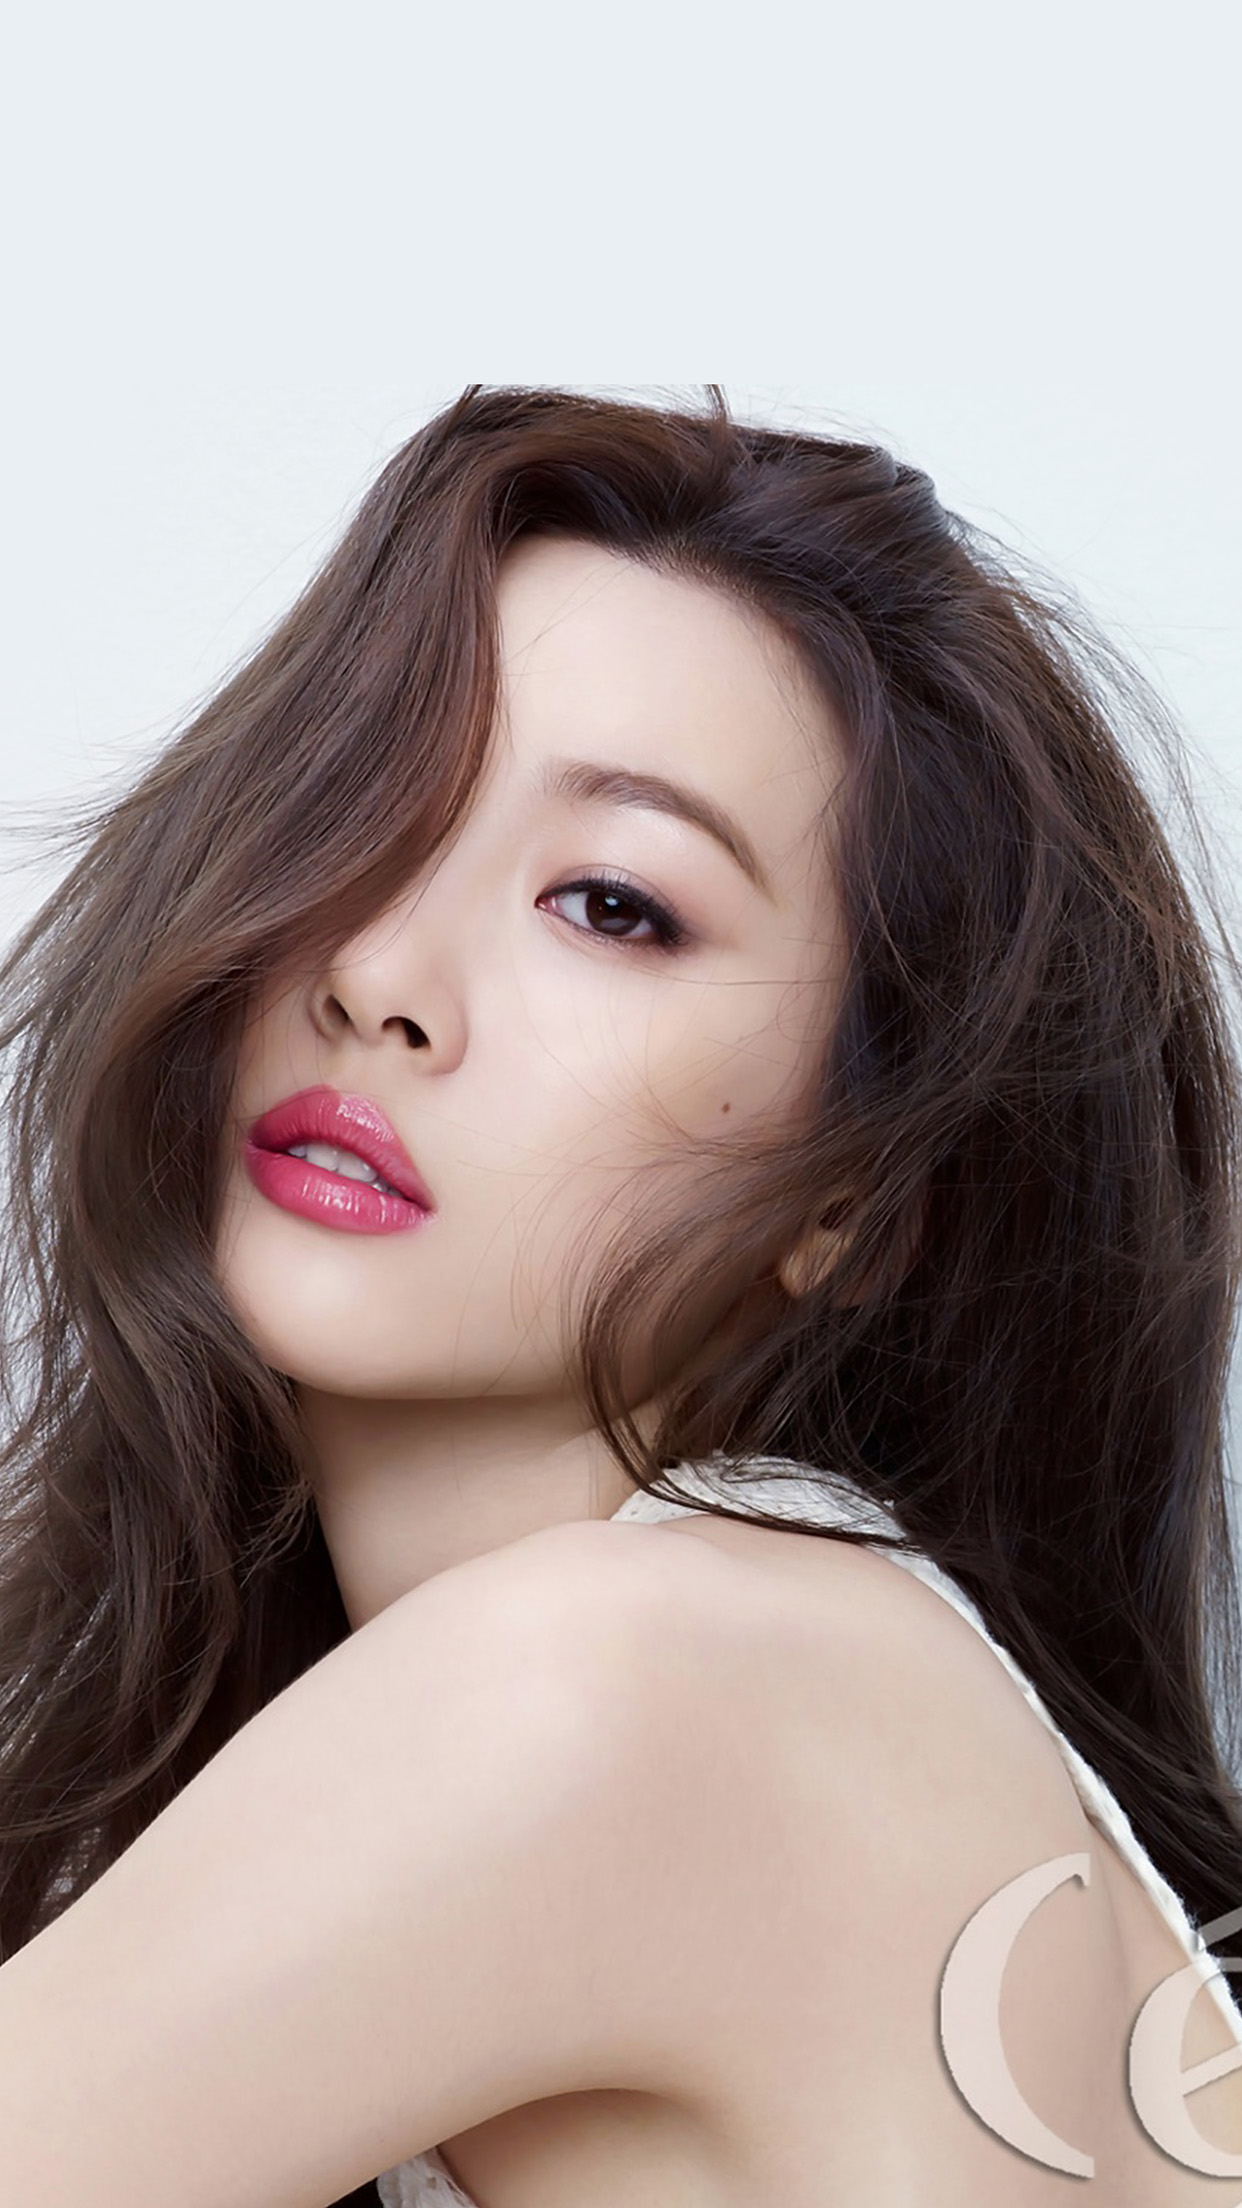 20 Asian Makeup Trends You Need To Try This Year: Hk20-kpop-jyp-girl-white-asian-sunmi-wallpaper